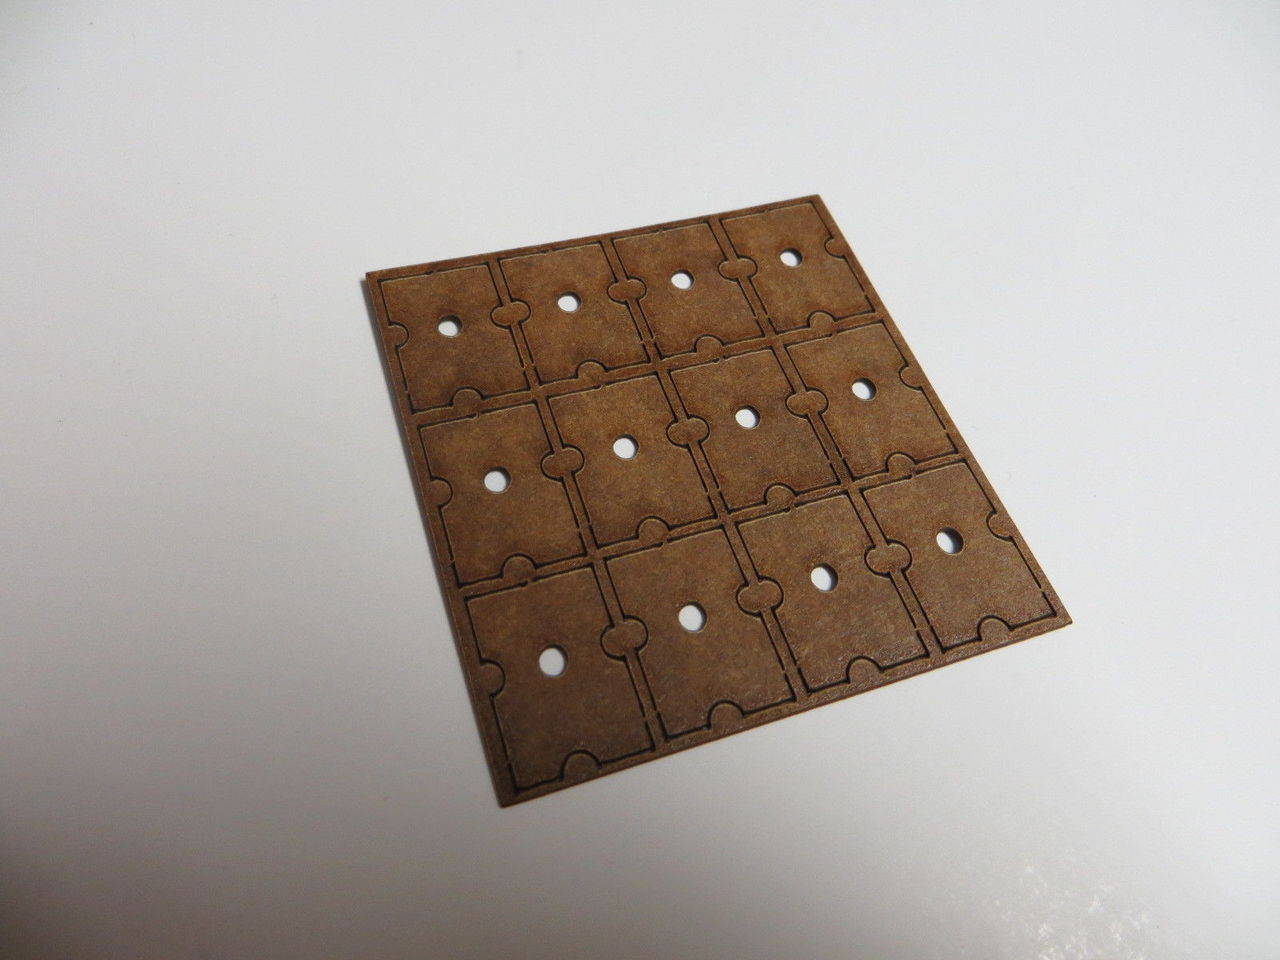 48-1200 Kadee KD O Scale Coupler Shims .025 12pc Laser Cut 2 / 3 Rail